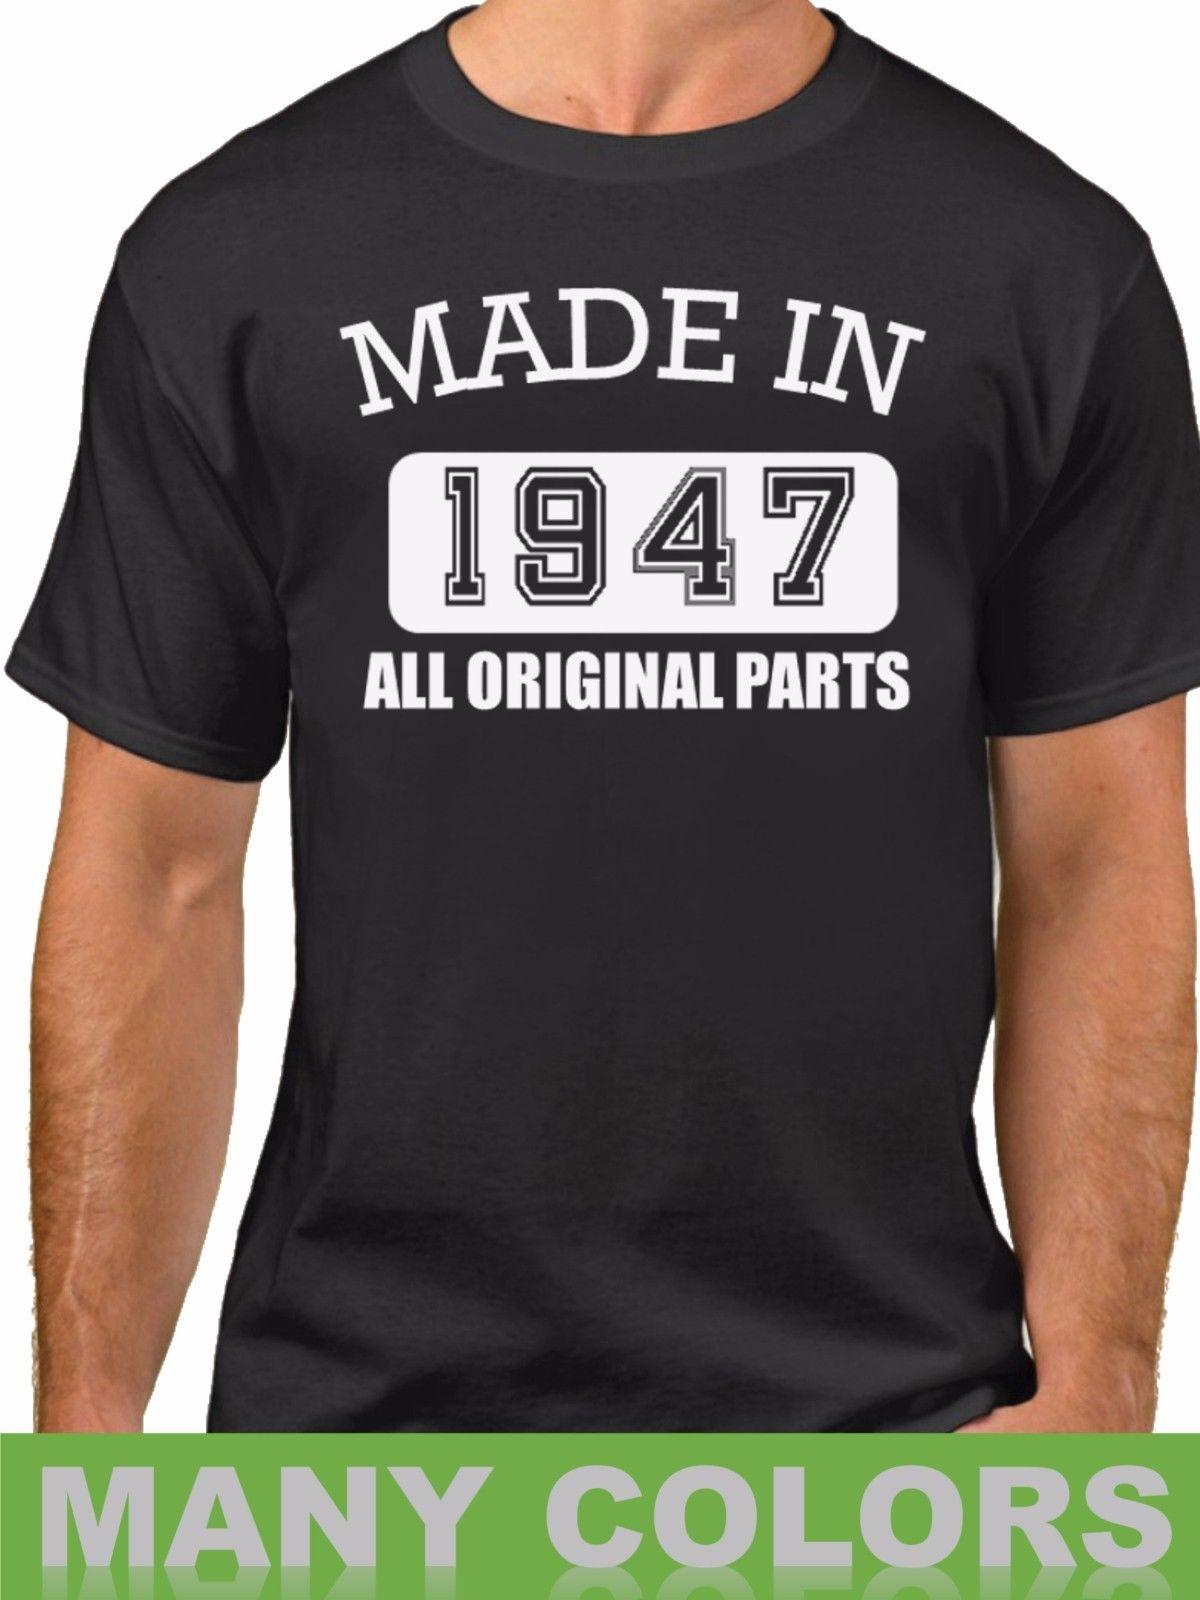 Details Zu Made In 1947 All Original Parts T Shirt 70 Years Of Being 70th Birthday Funny Unisex Tee Cartoon Shirts Urban From Tshirt Press